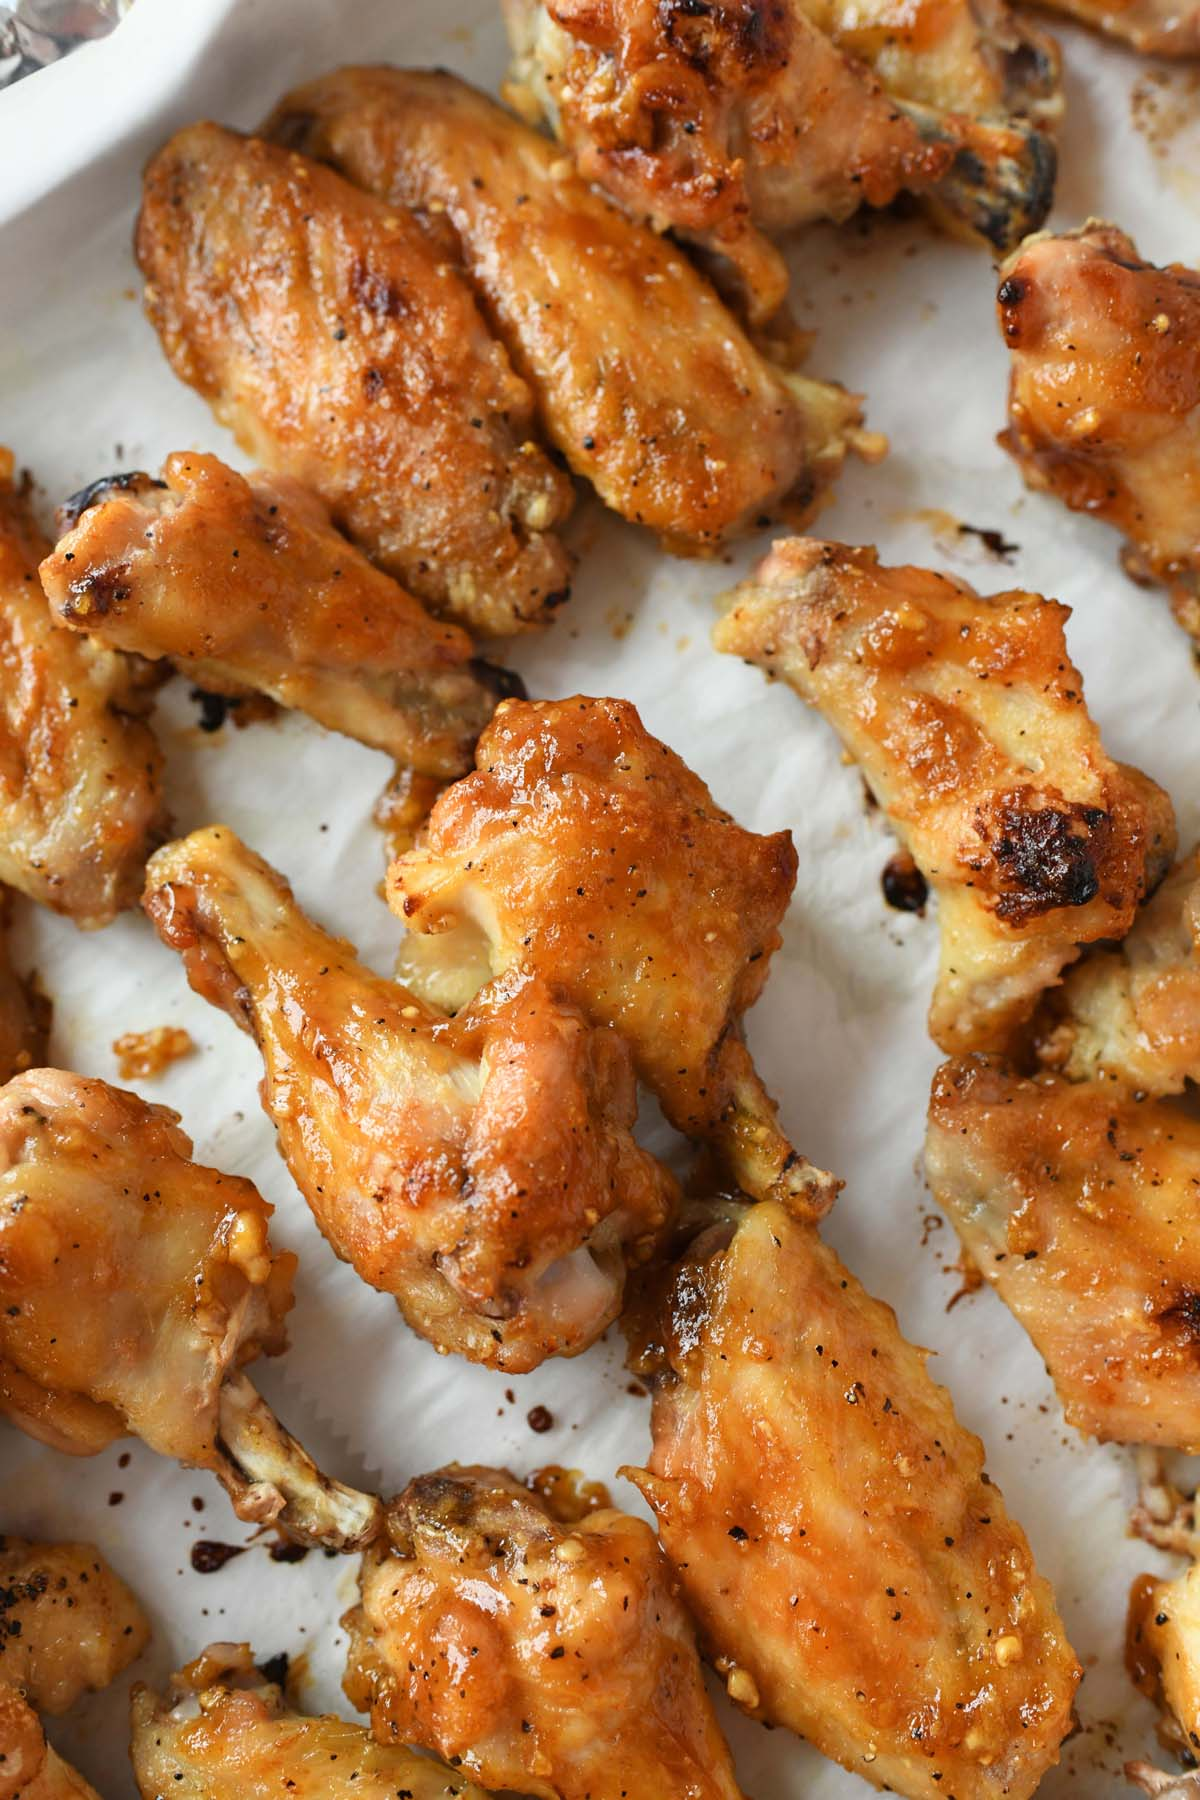 Oven-Baked Honey Garlic Chicken Wings on a baking sheet.